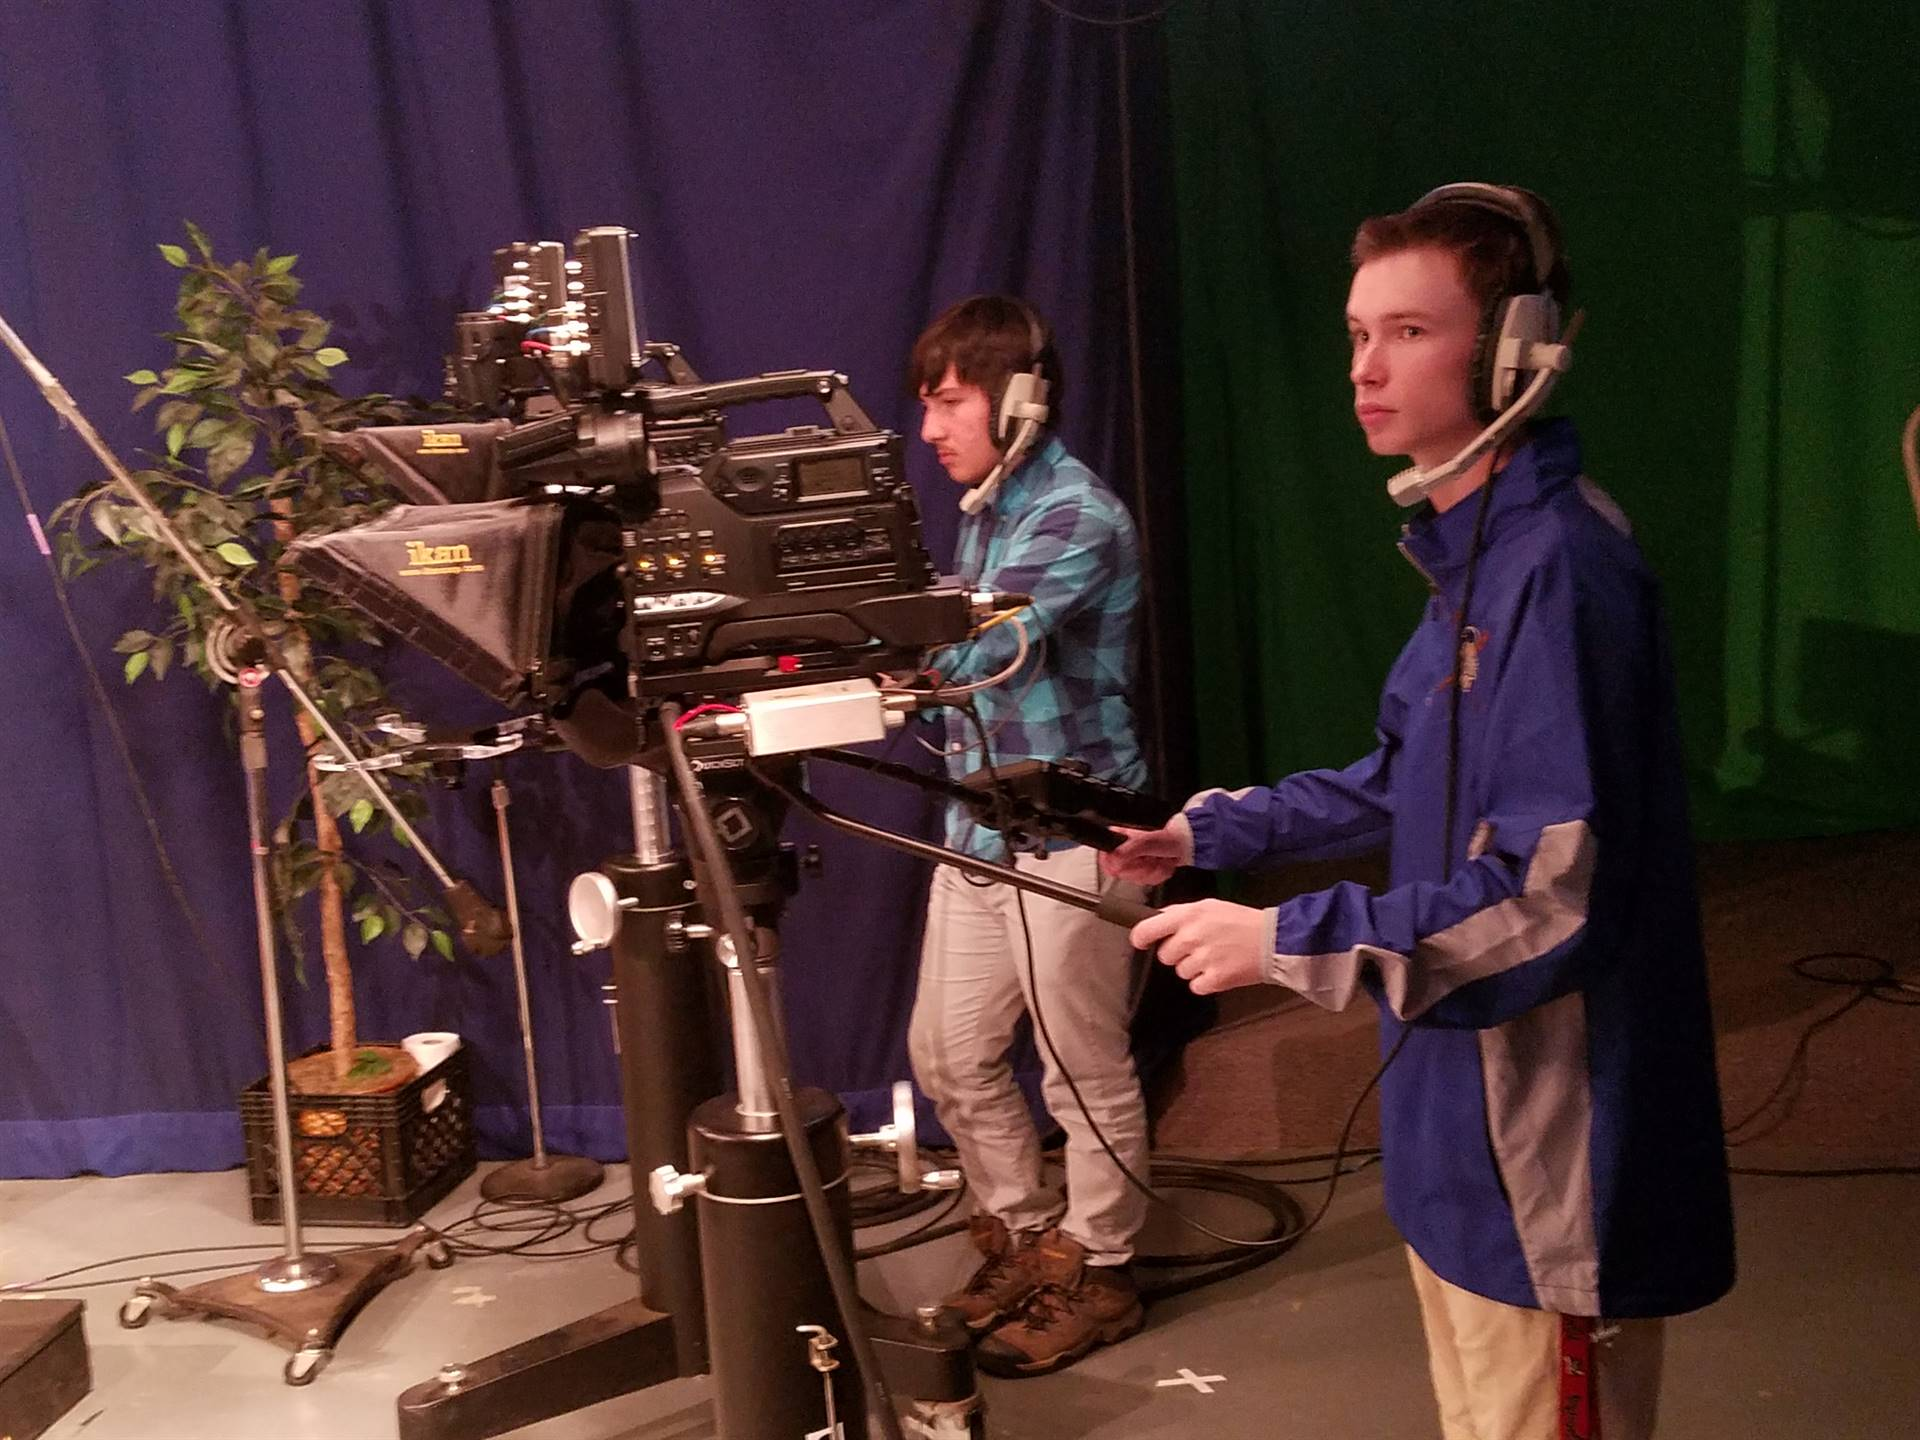 Stem students Learning about mass communication